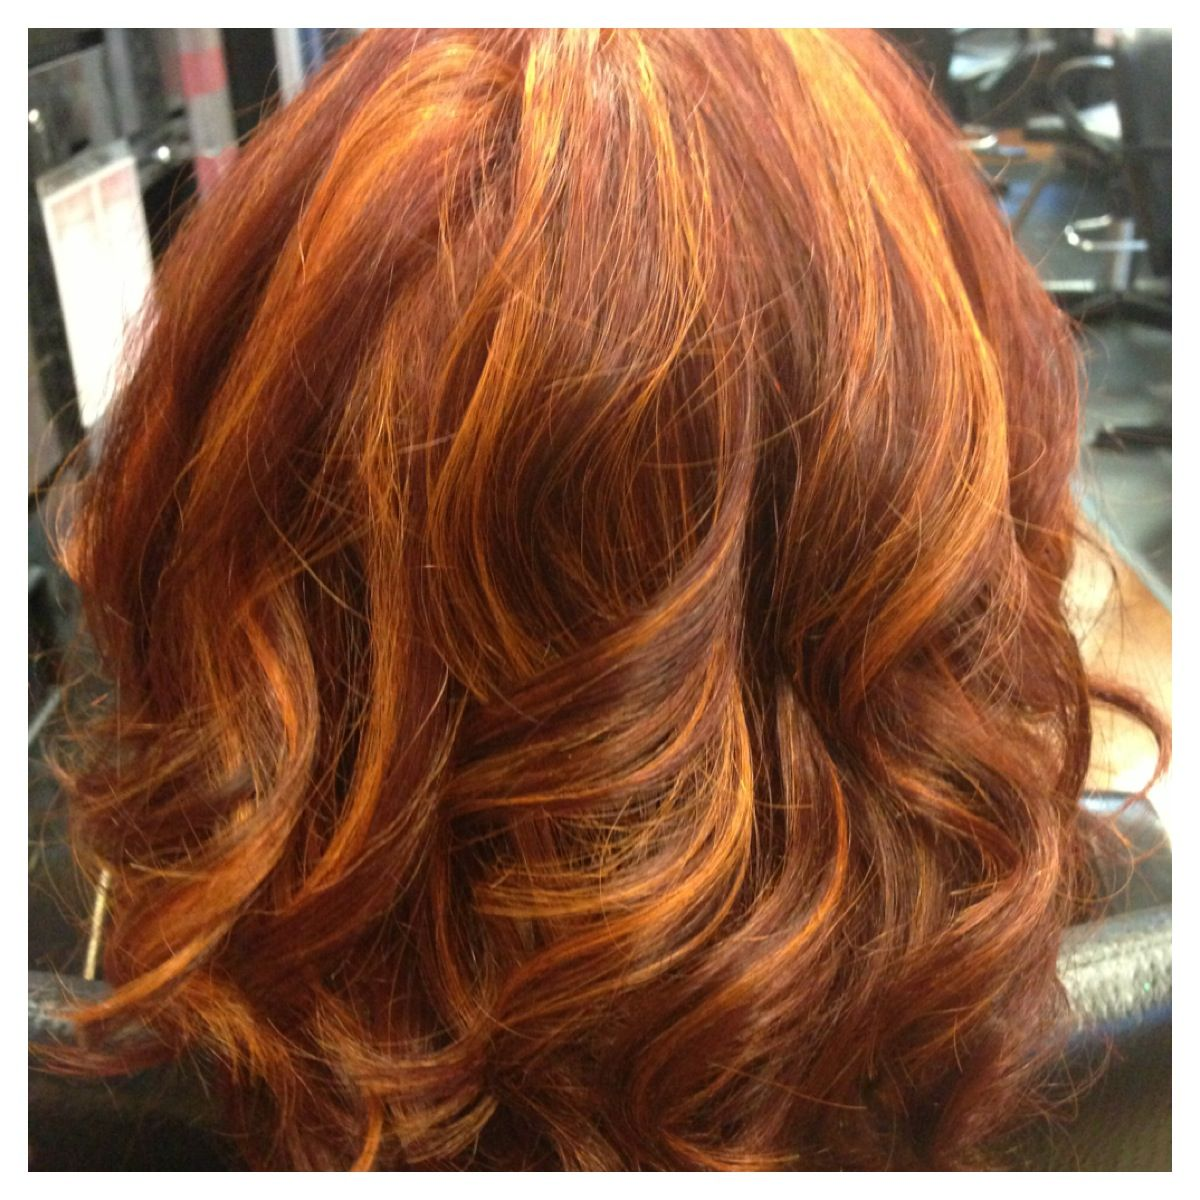 Red copper hair  Hair and Beauty  Pinterest  Copper hair and Hair